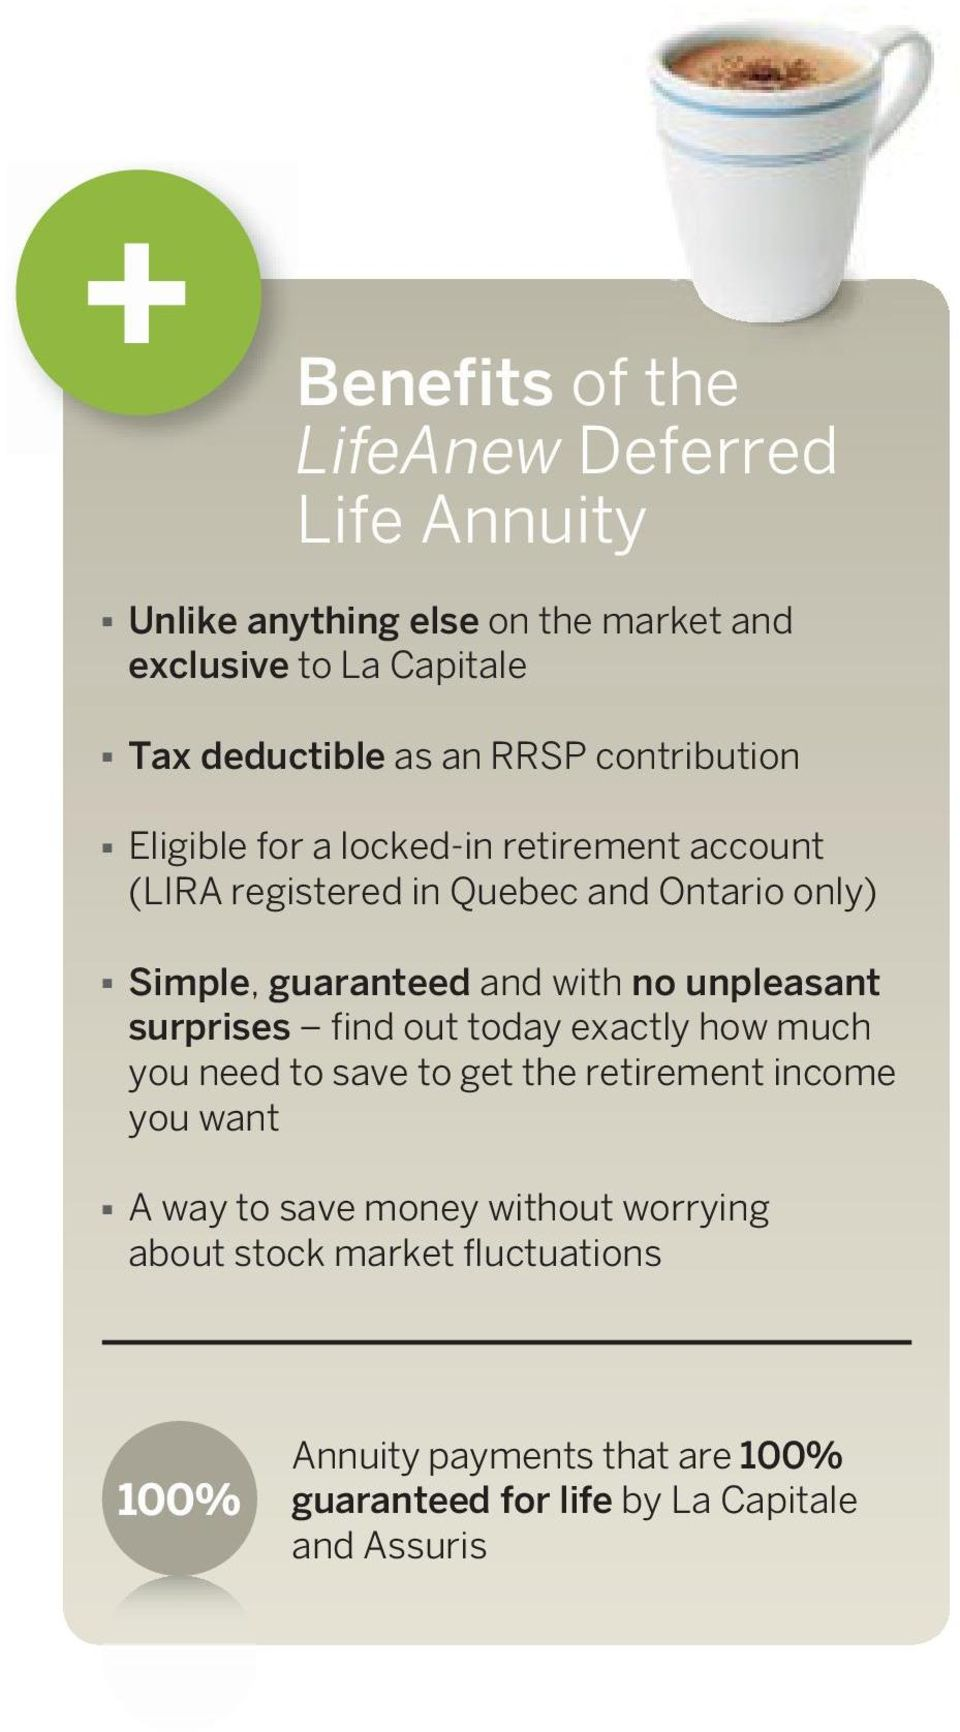 with no unpleasant surprises find out today exactly how much you need to save to get the retirement income you want A way to save